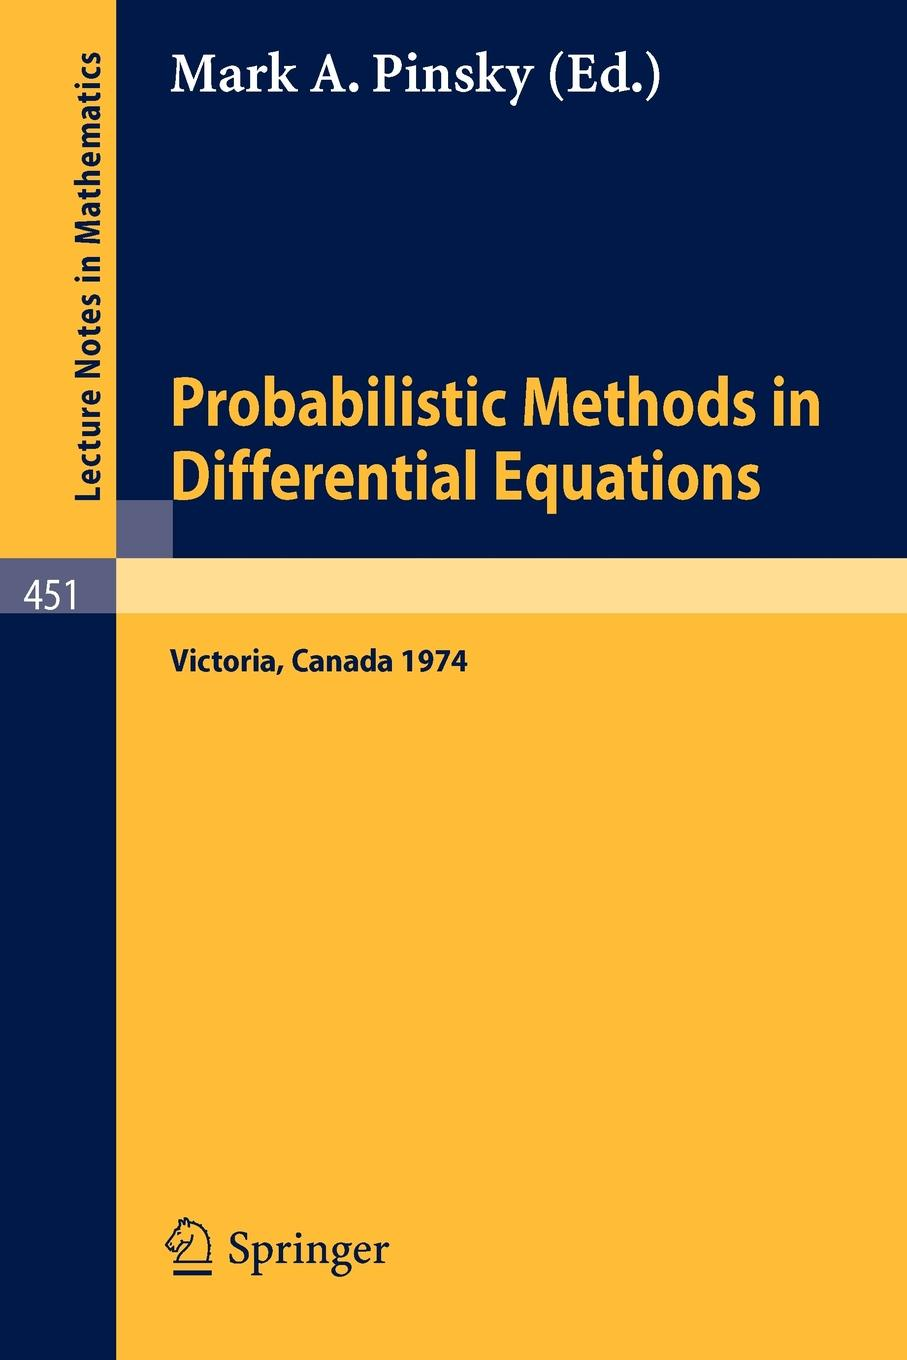 Probabilistic Methods in Differential Equations. Proceedings of the Conference held at the University of Victoria, August 19-20, 1974 цена и фото